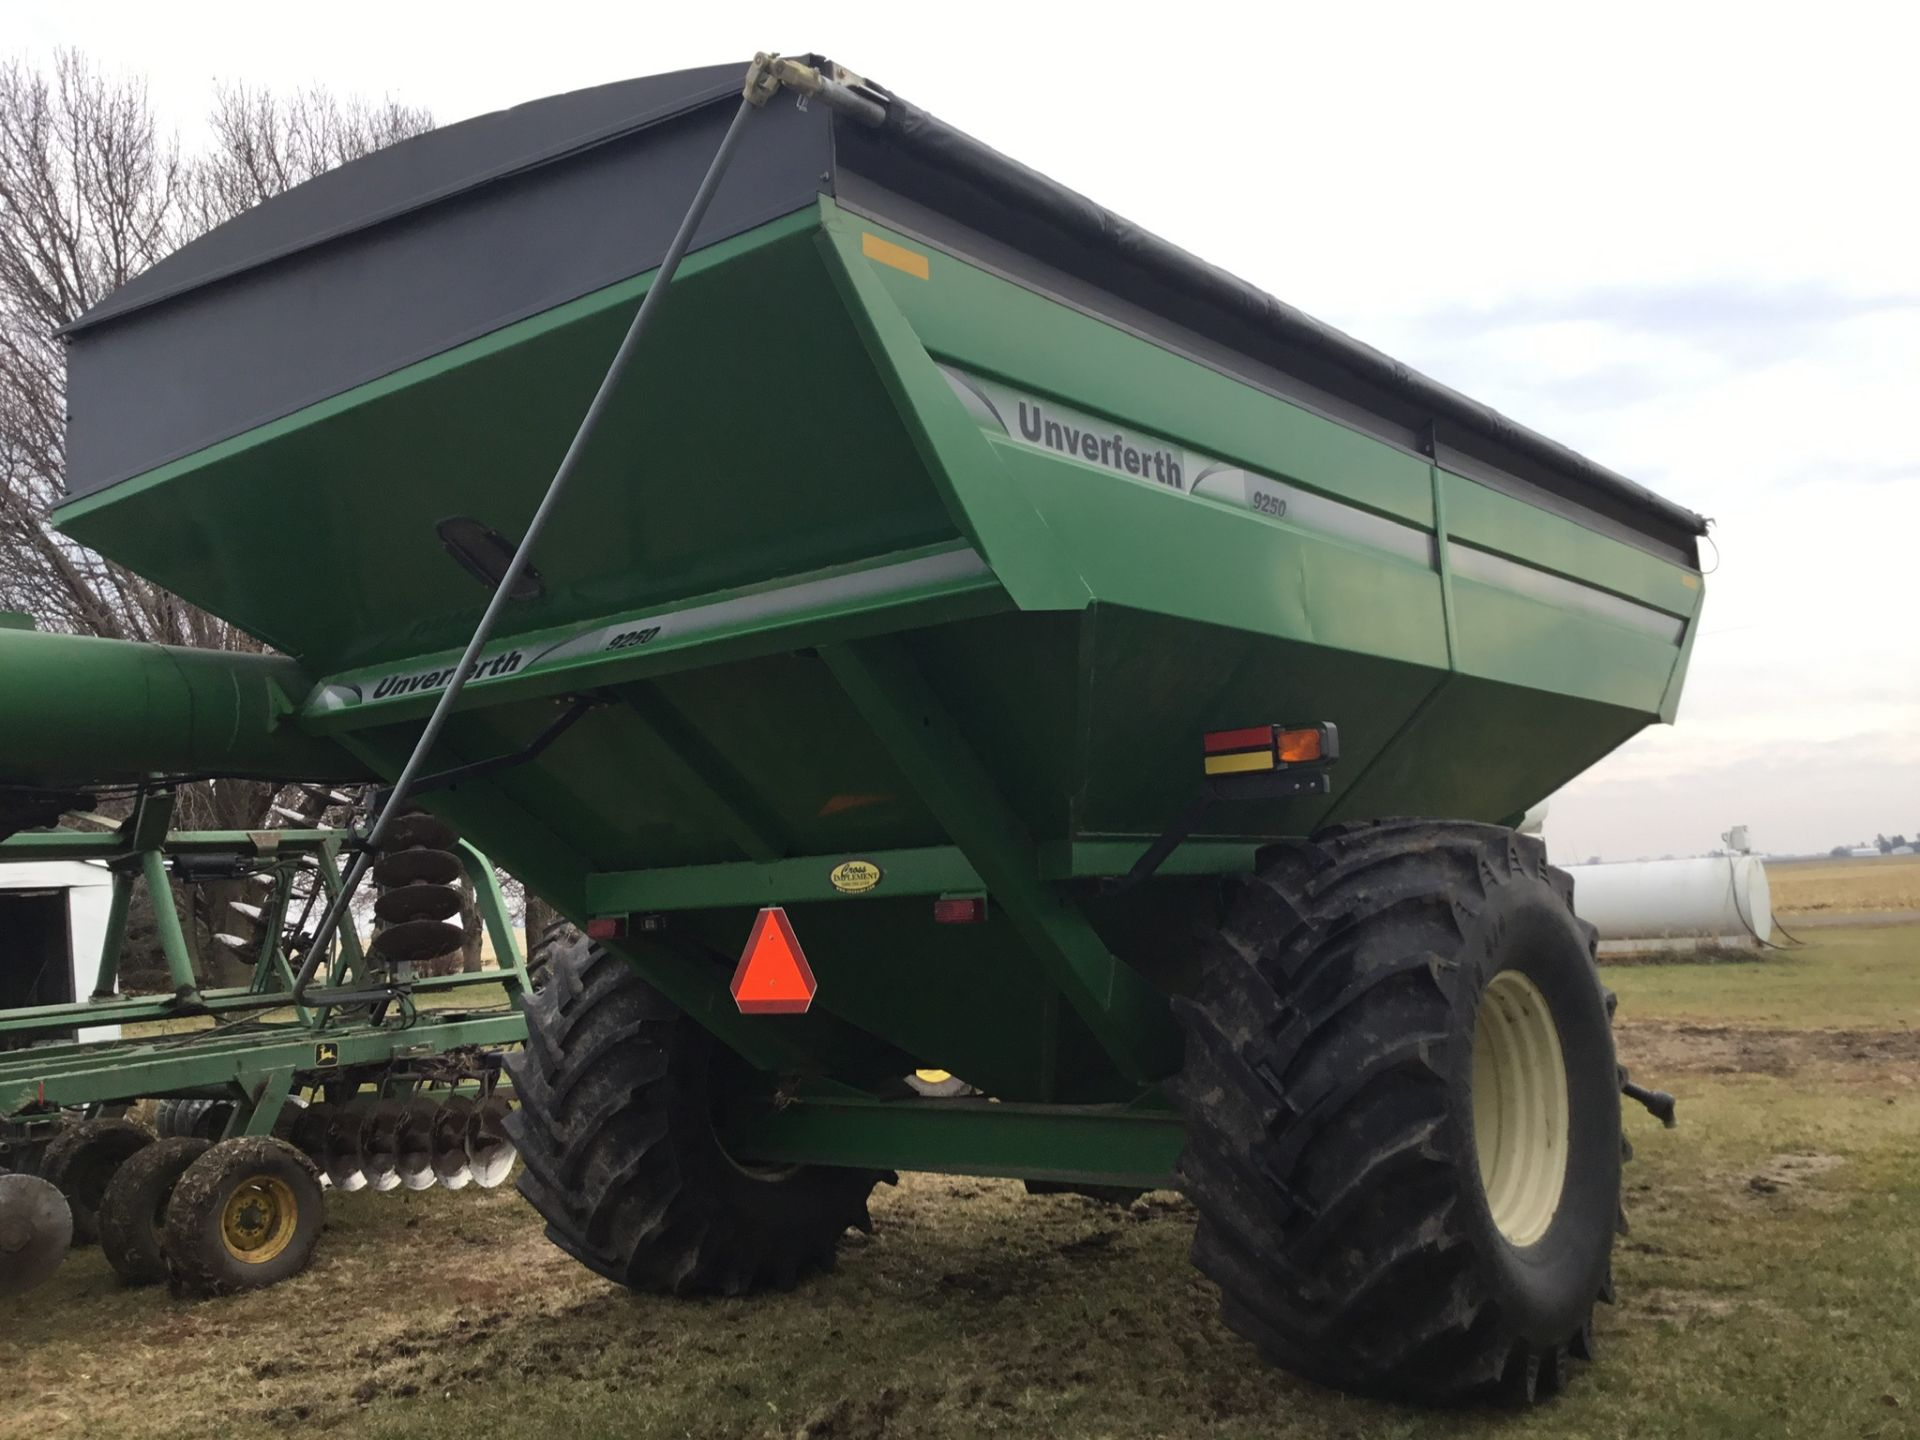 2009 Unverferth 9250 1,000 Bu. Auger Cart, Hydraulic Spout, 3 Cameras, Roll Tarp, New Augers, 900- - Image 9 of 15